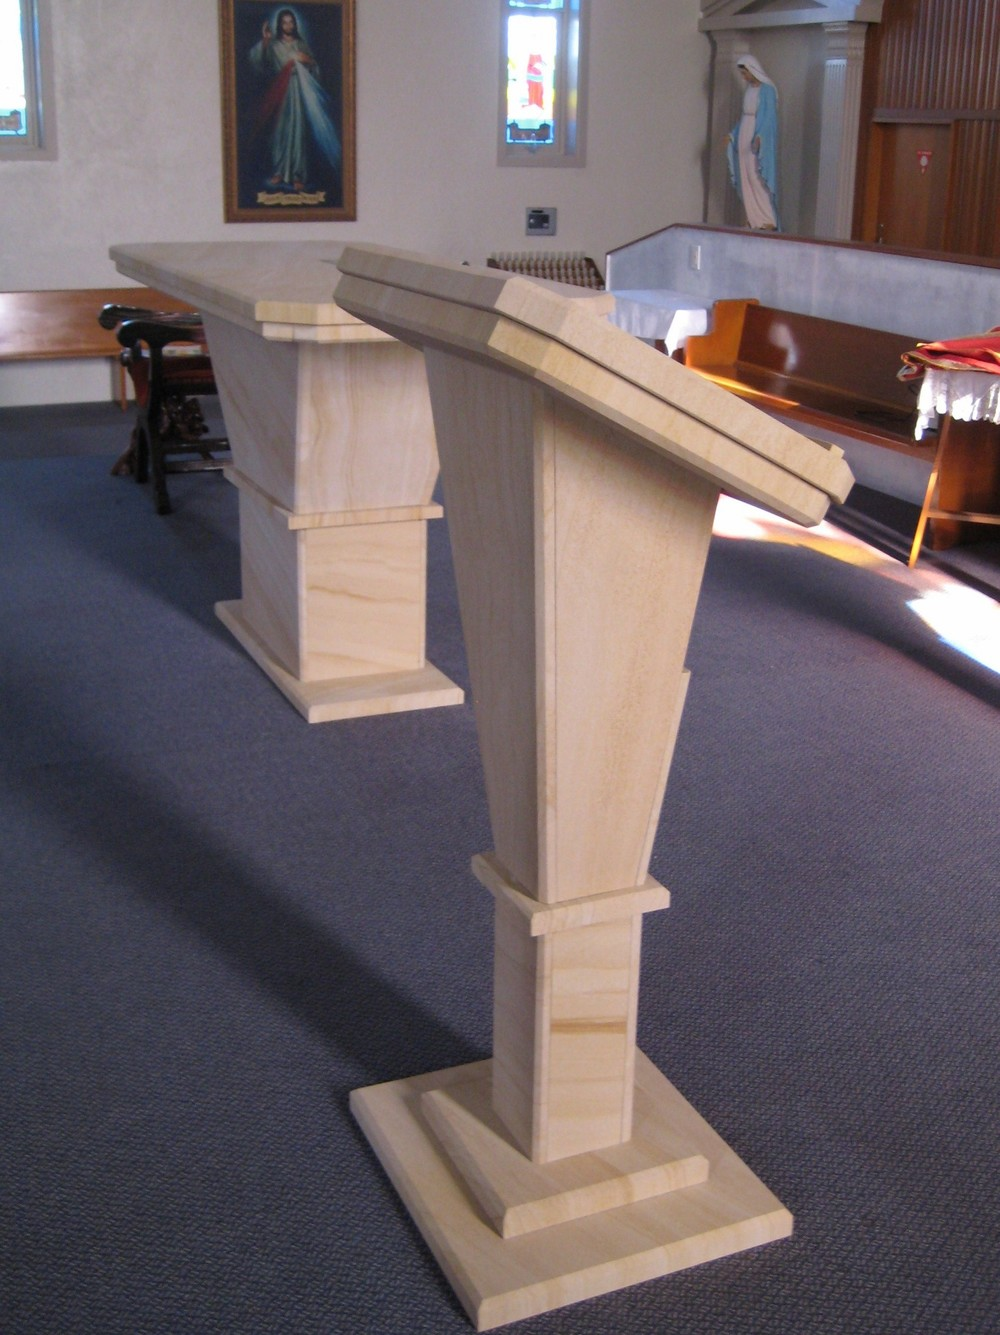 195 Woodgrain Sandstone Altar and Reading Stand for Church.jpg